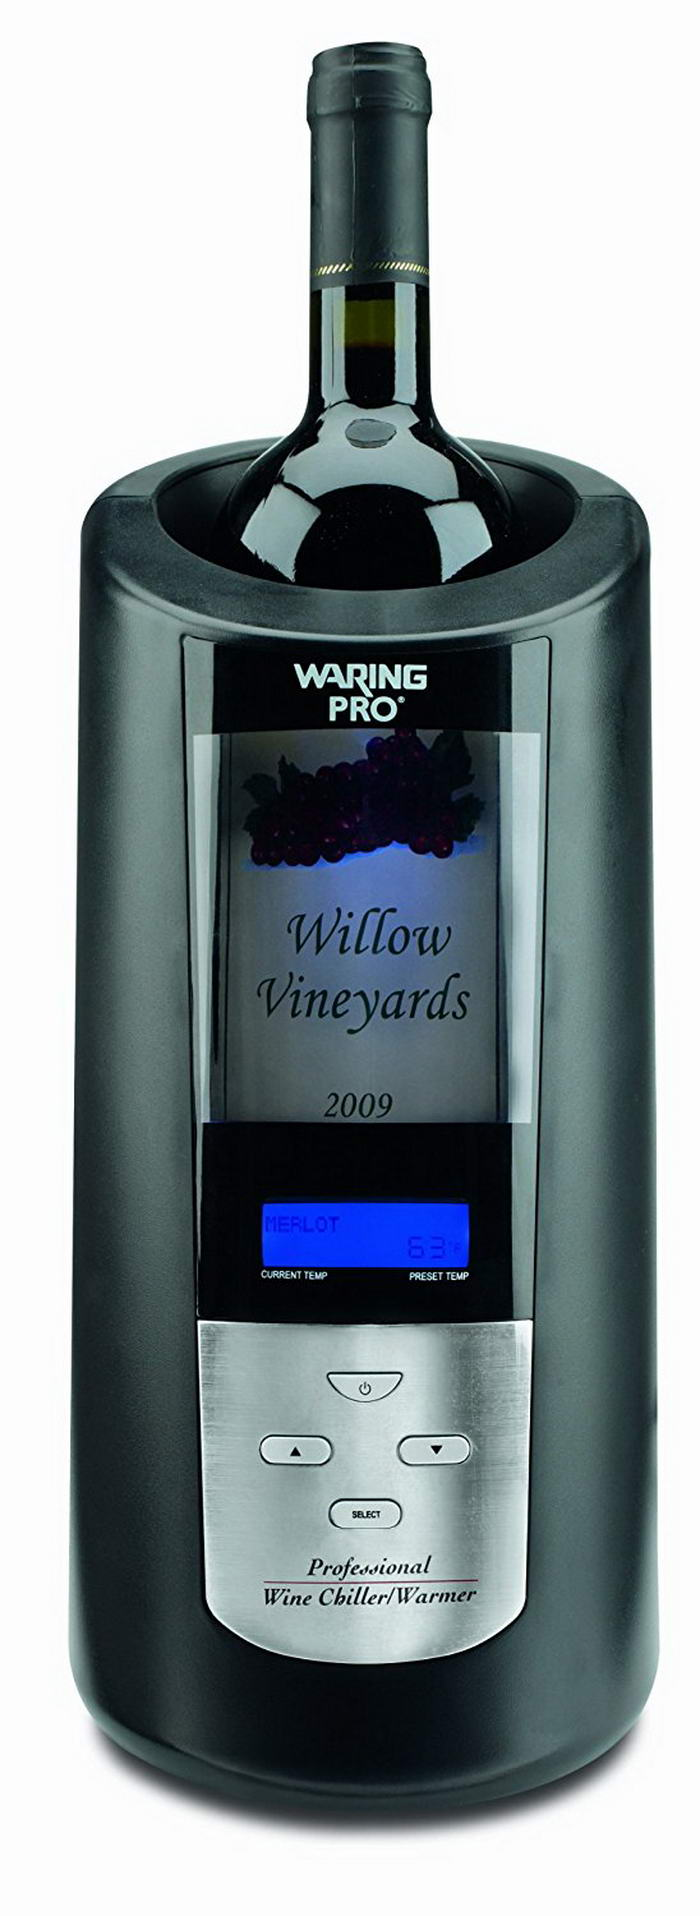 Waring Pro Wine Chiller and Warmer (3)